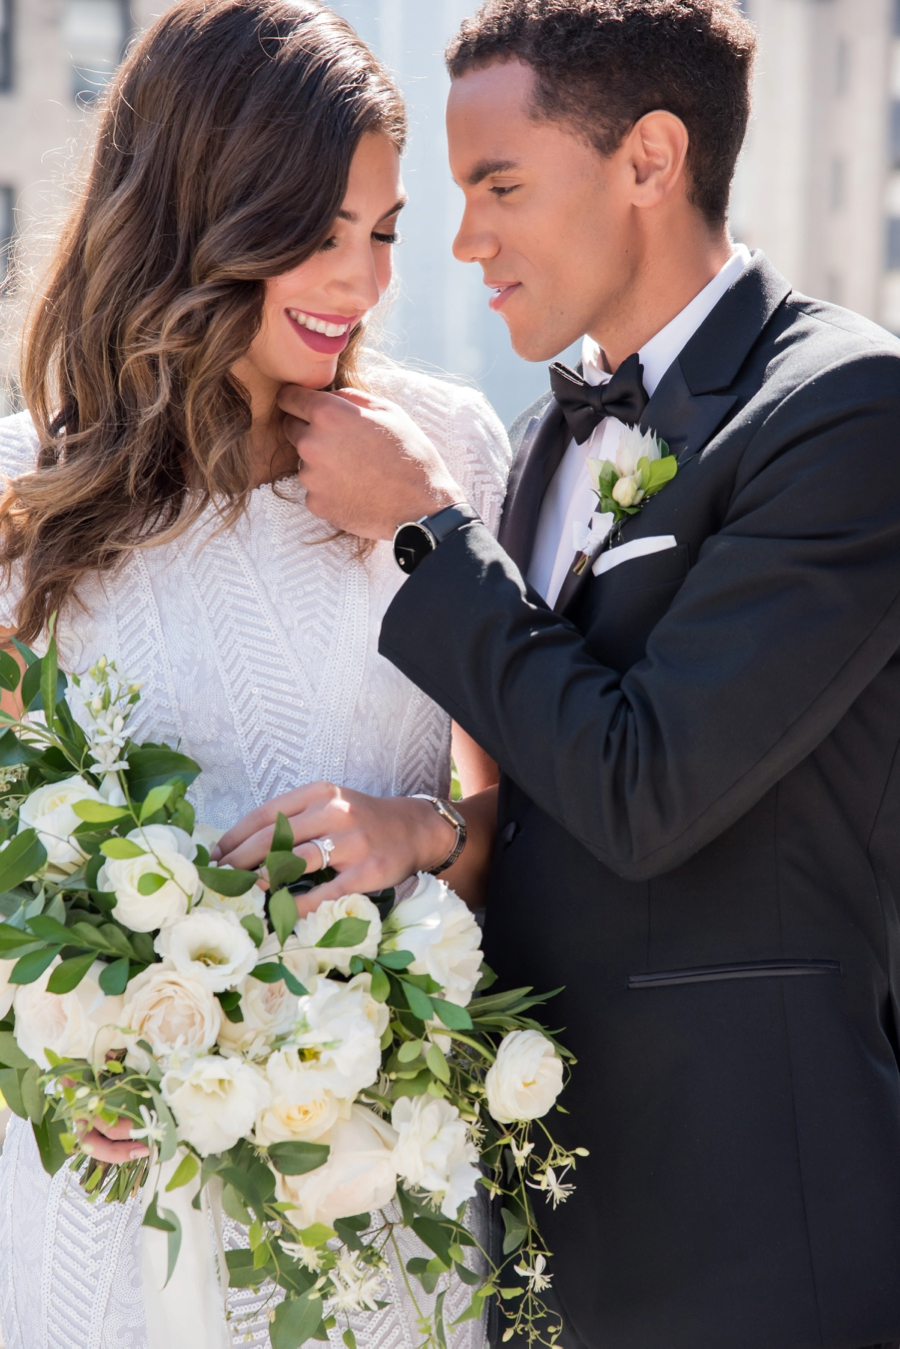 Modern Rooftop Elopement Inspiration With Chic Wedding Day Gift Ideas via TheELD.com